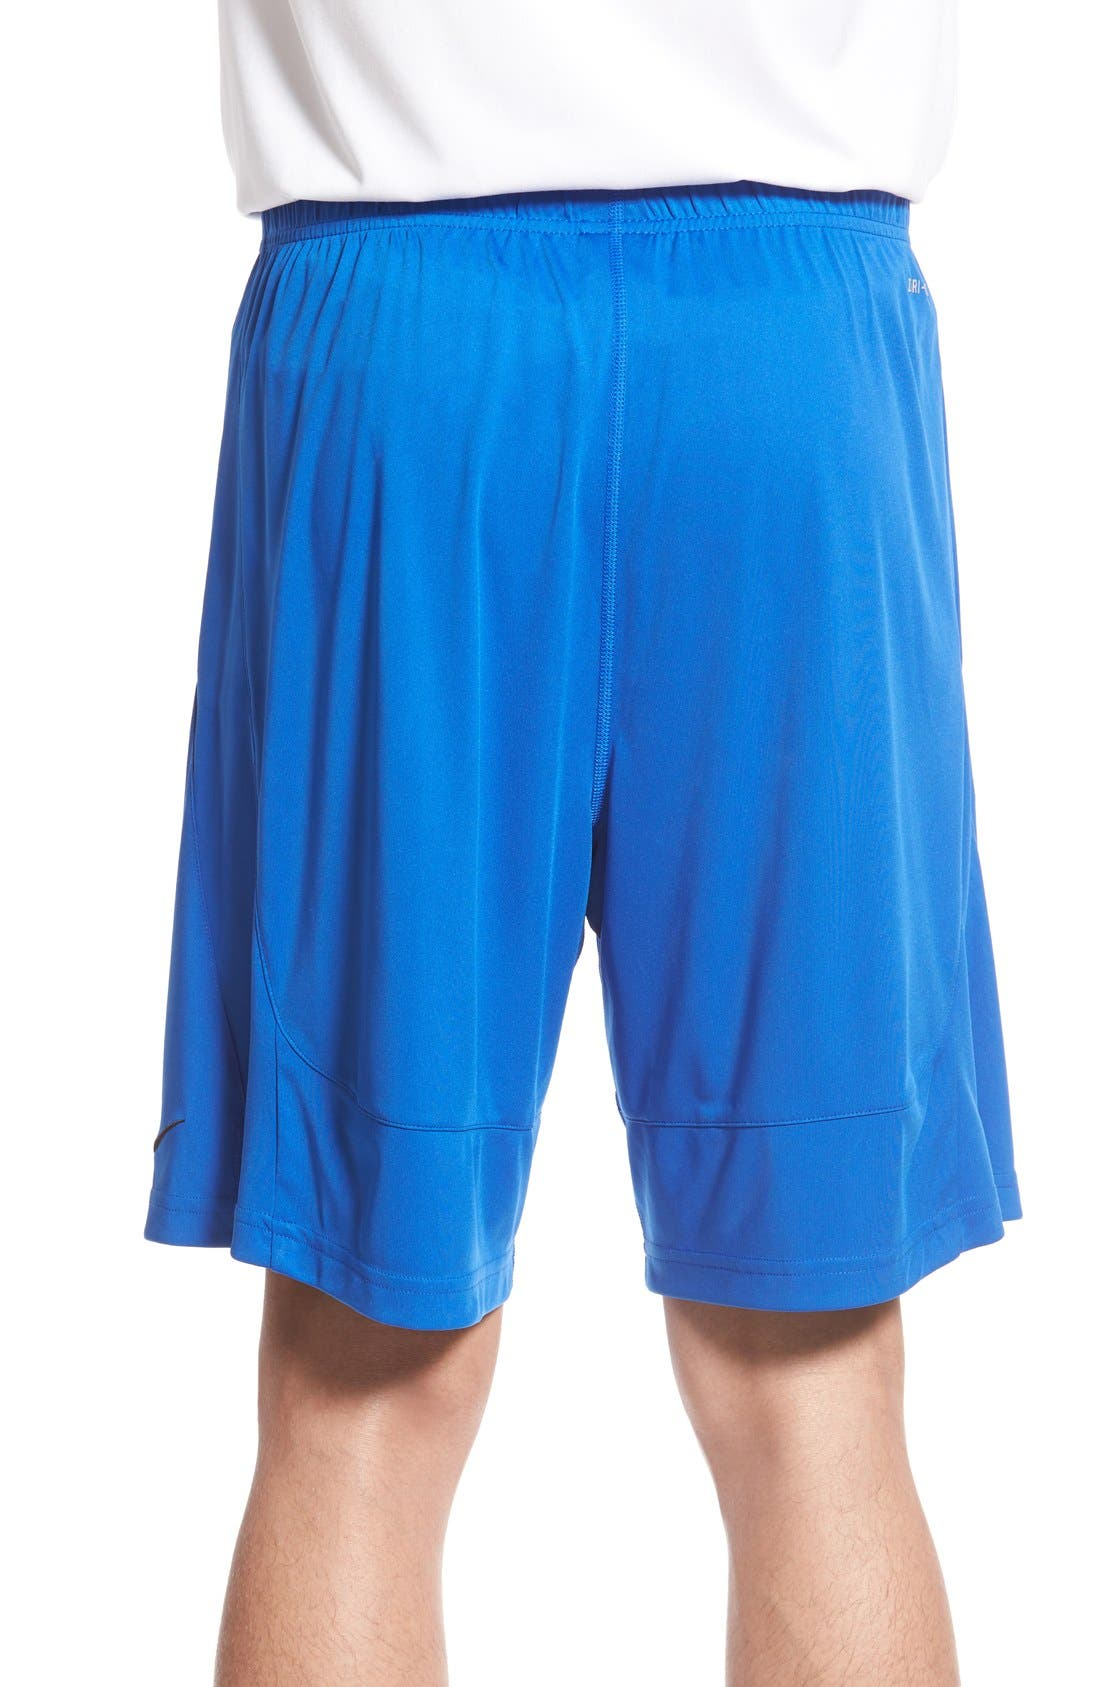 'Fly' Dri-FIT Training Shorts,                             Alternate thumbnail 86, color,